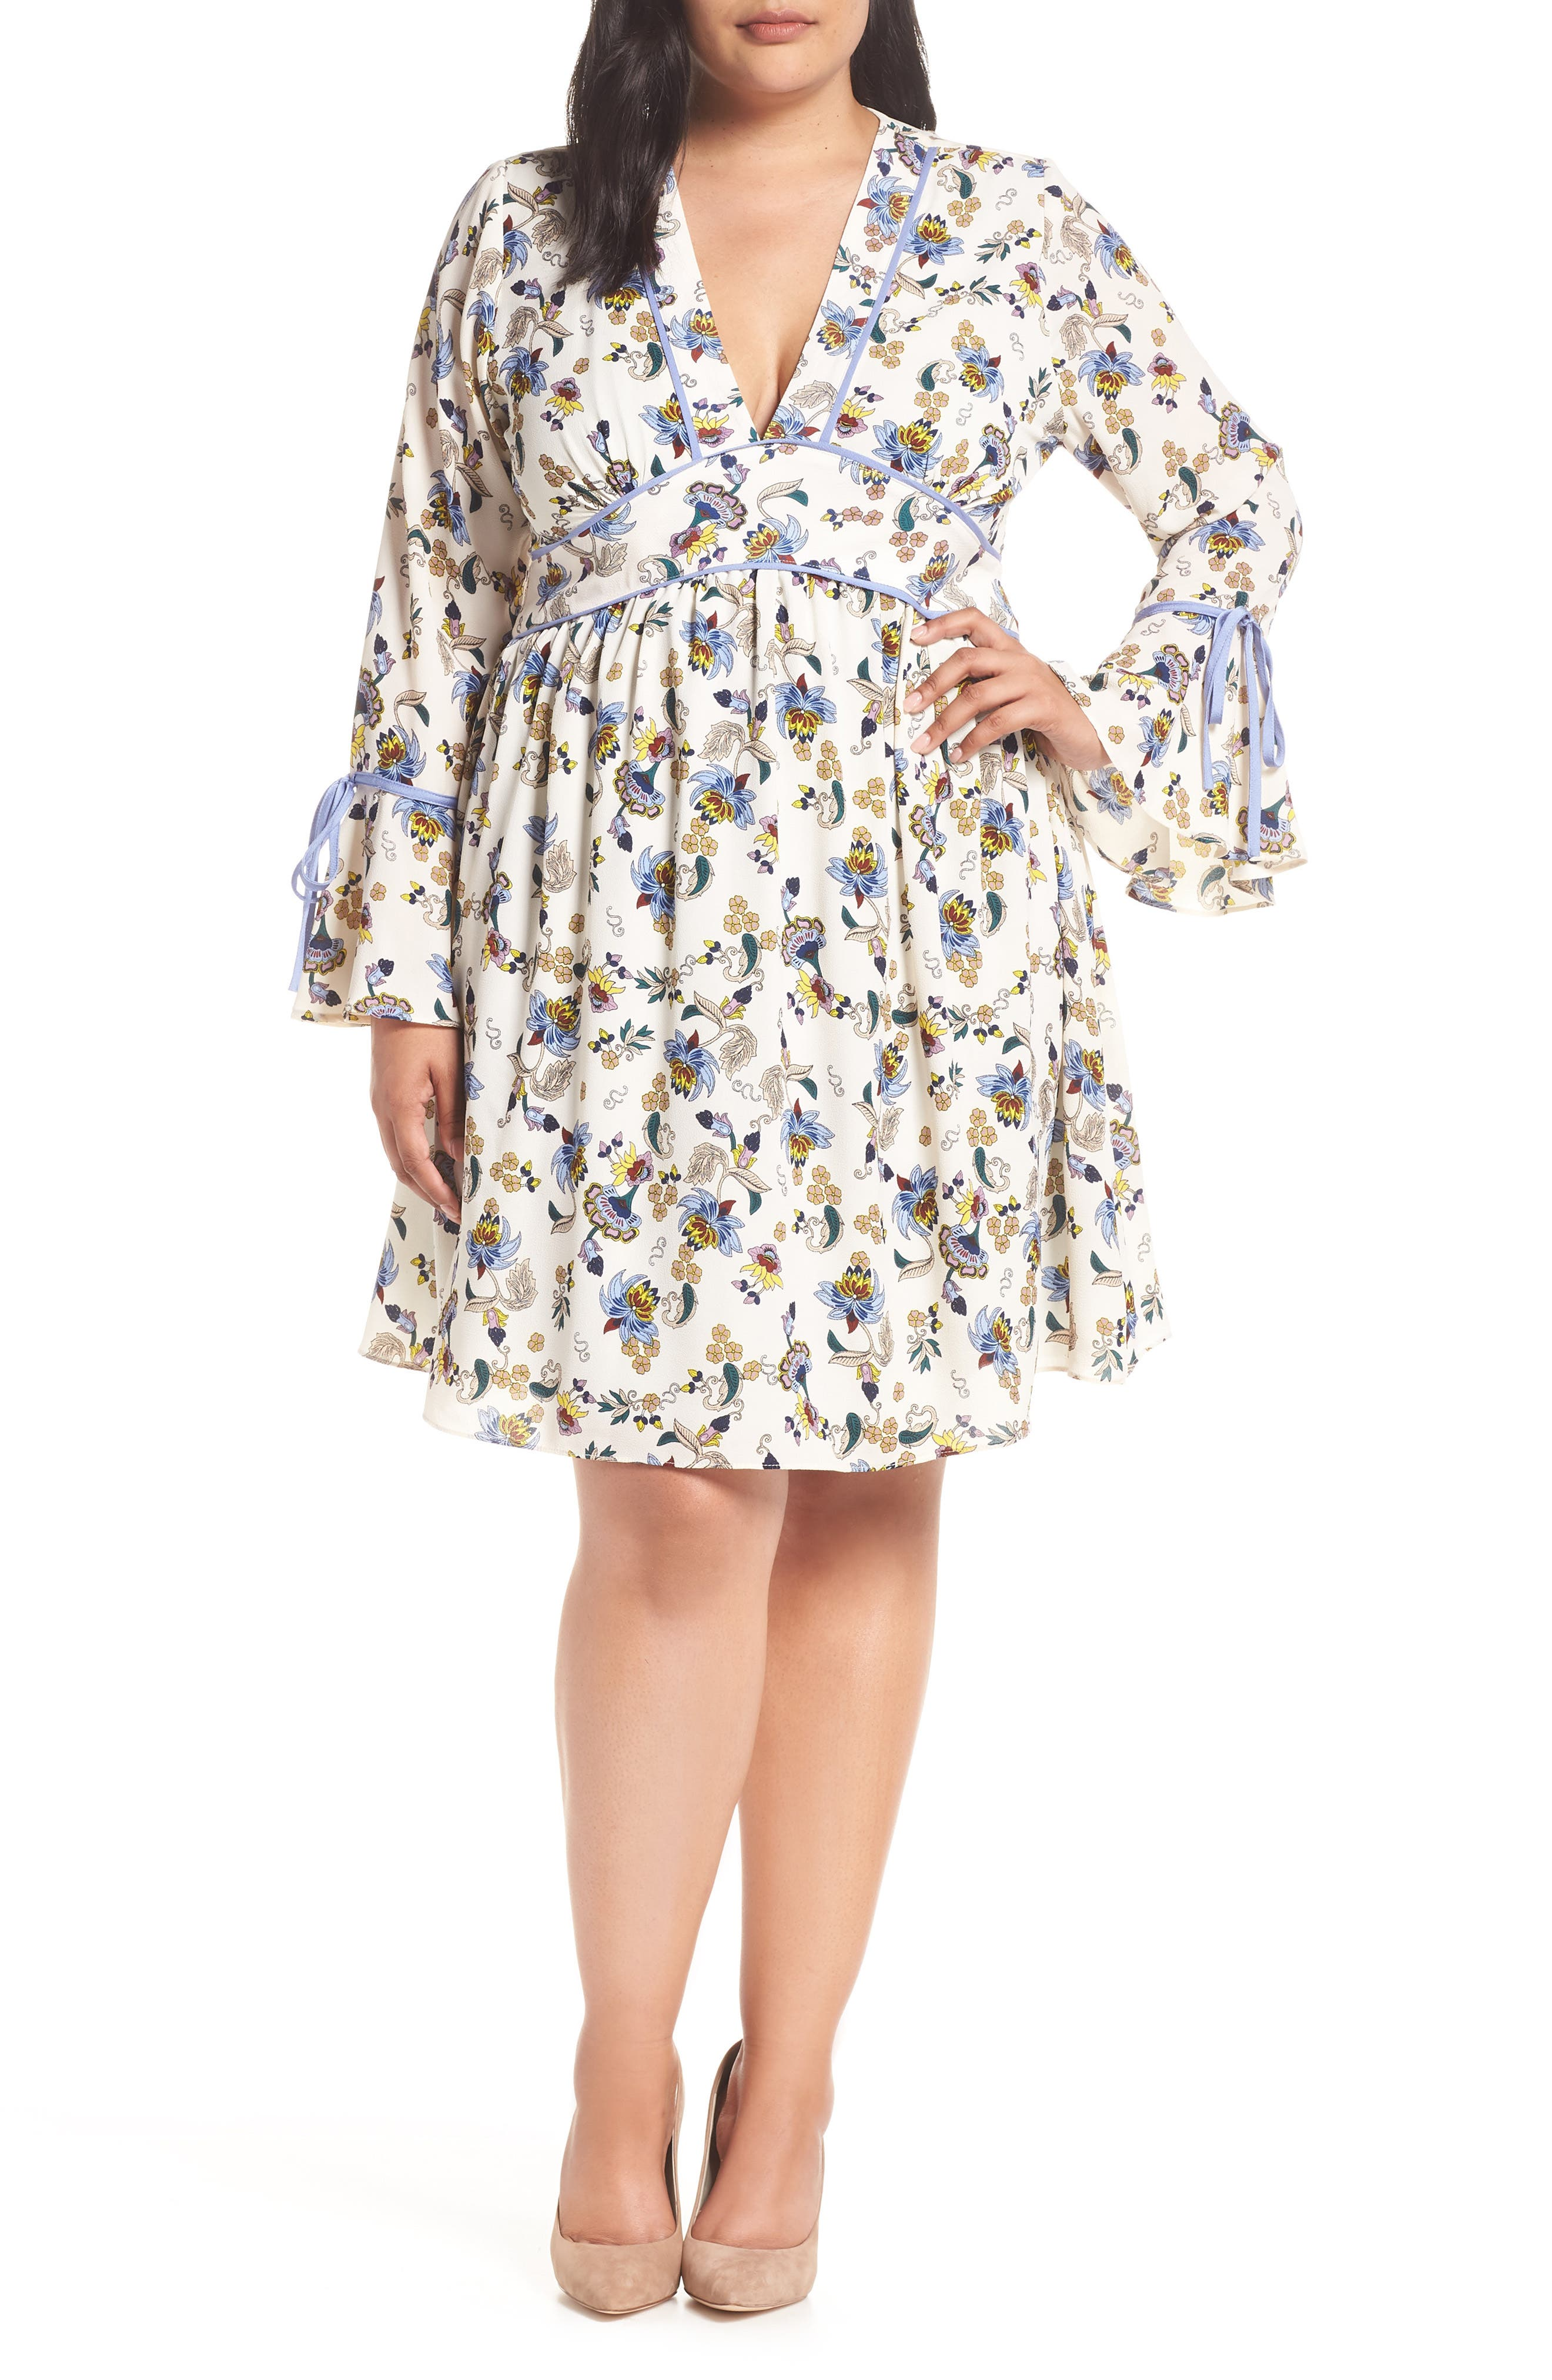 GLAMOROUS Contrast Detail Tie Sleeve Dress in Cream Blue Floral